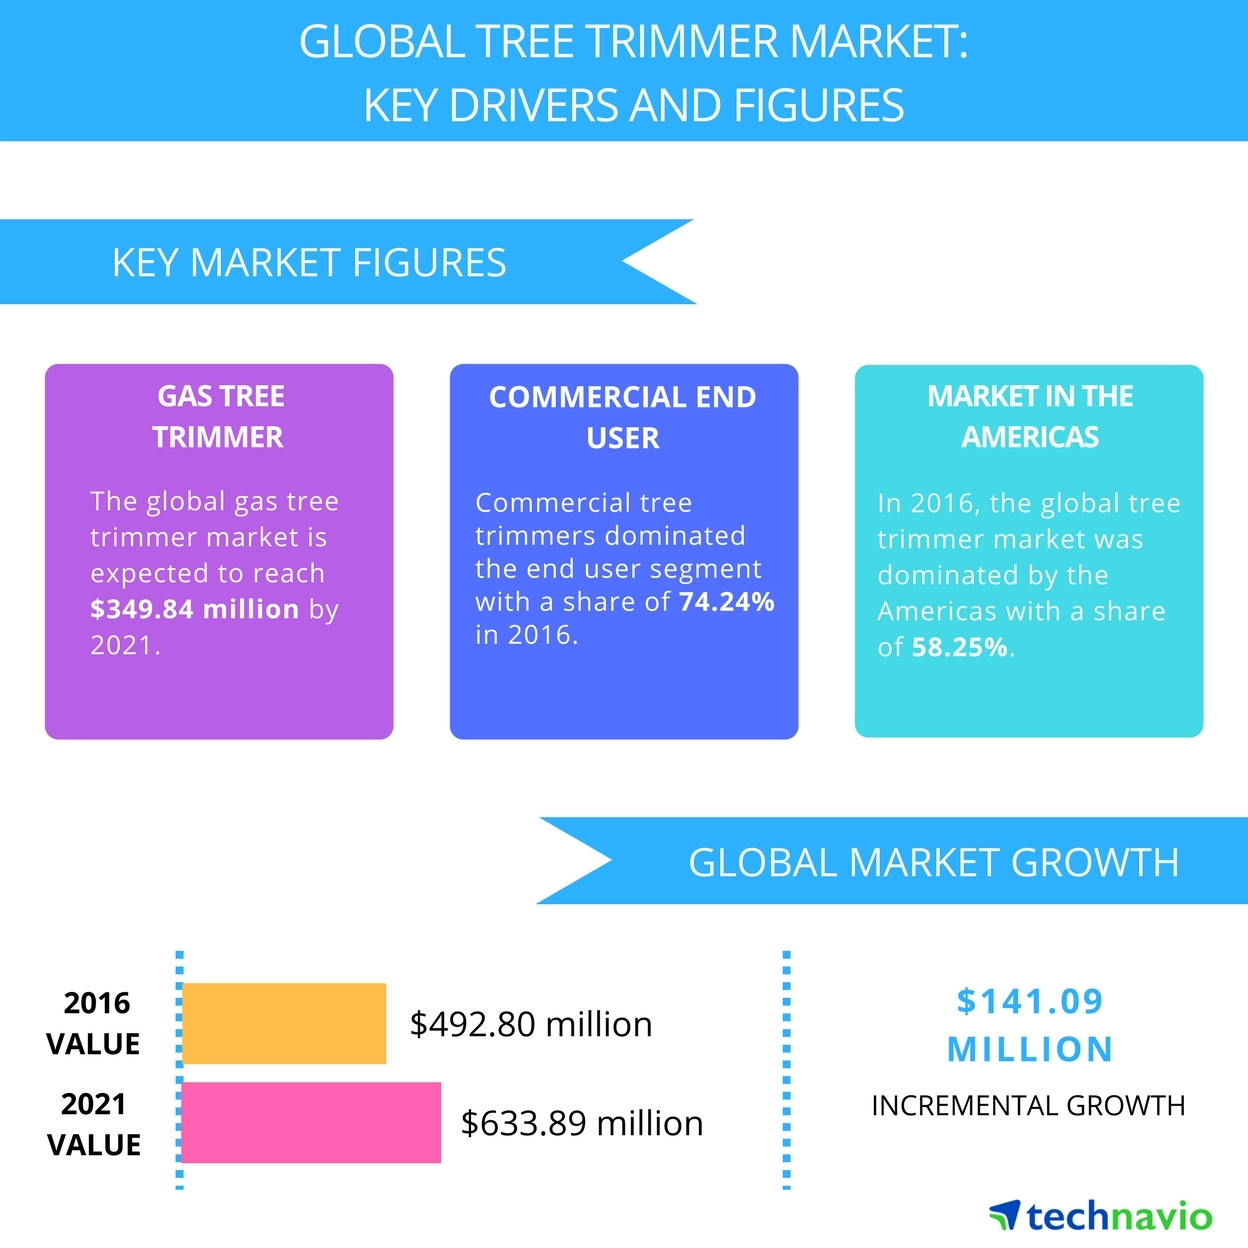 Technavio has published a new report on the global tree trimmer market from 2017-2021. (Photo: Business Wire)